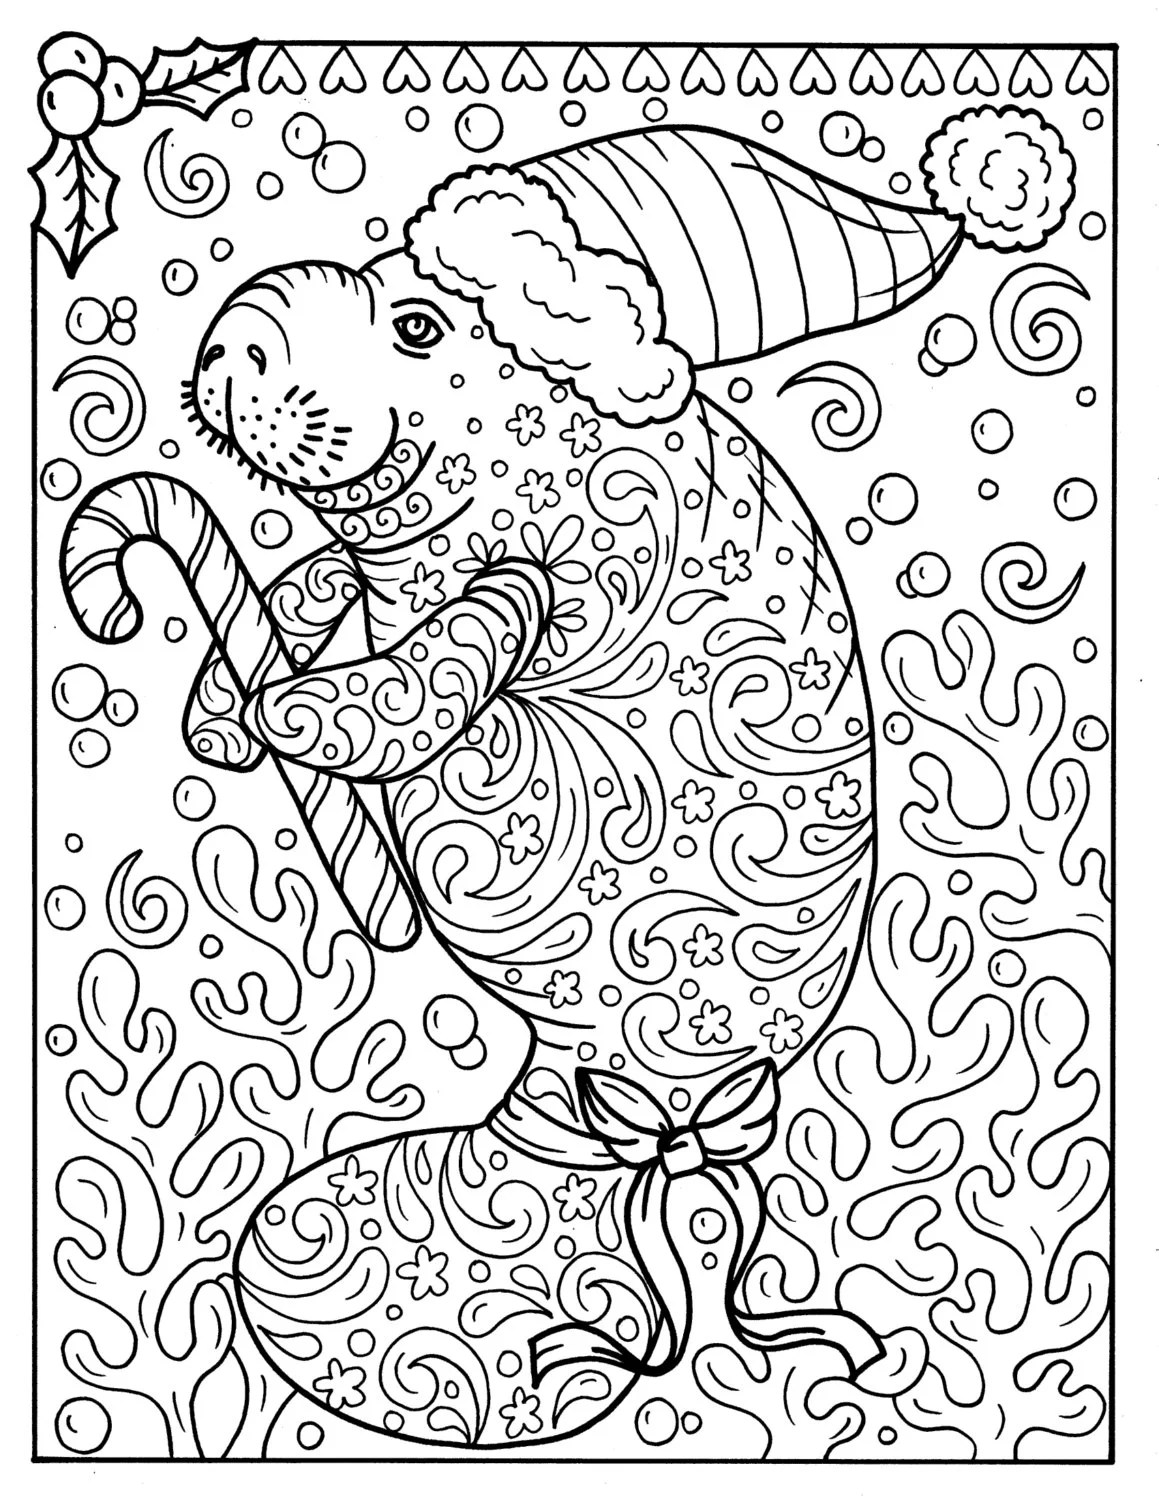 Manatee Christmas Coloring Page Instant Download Adult